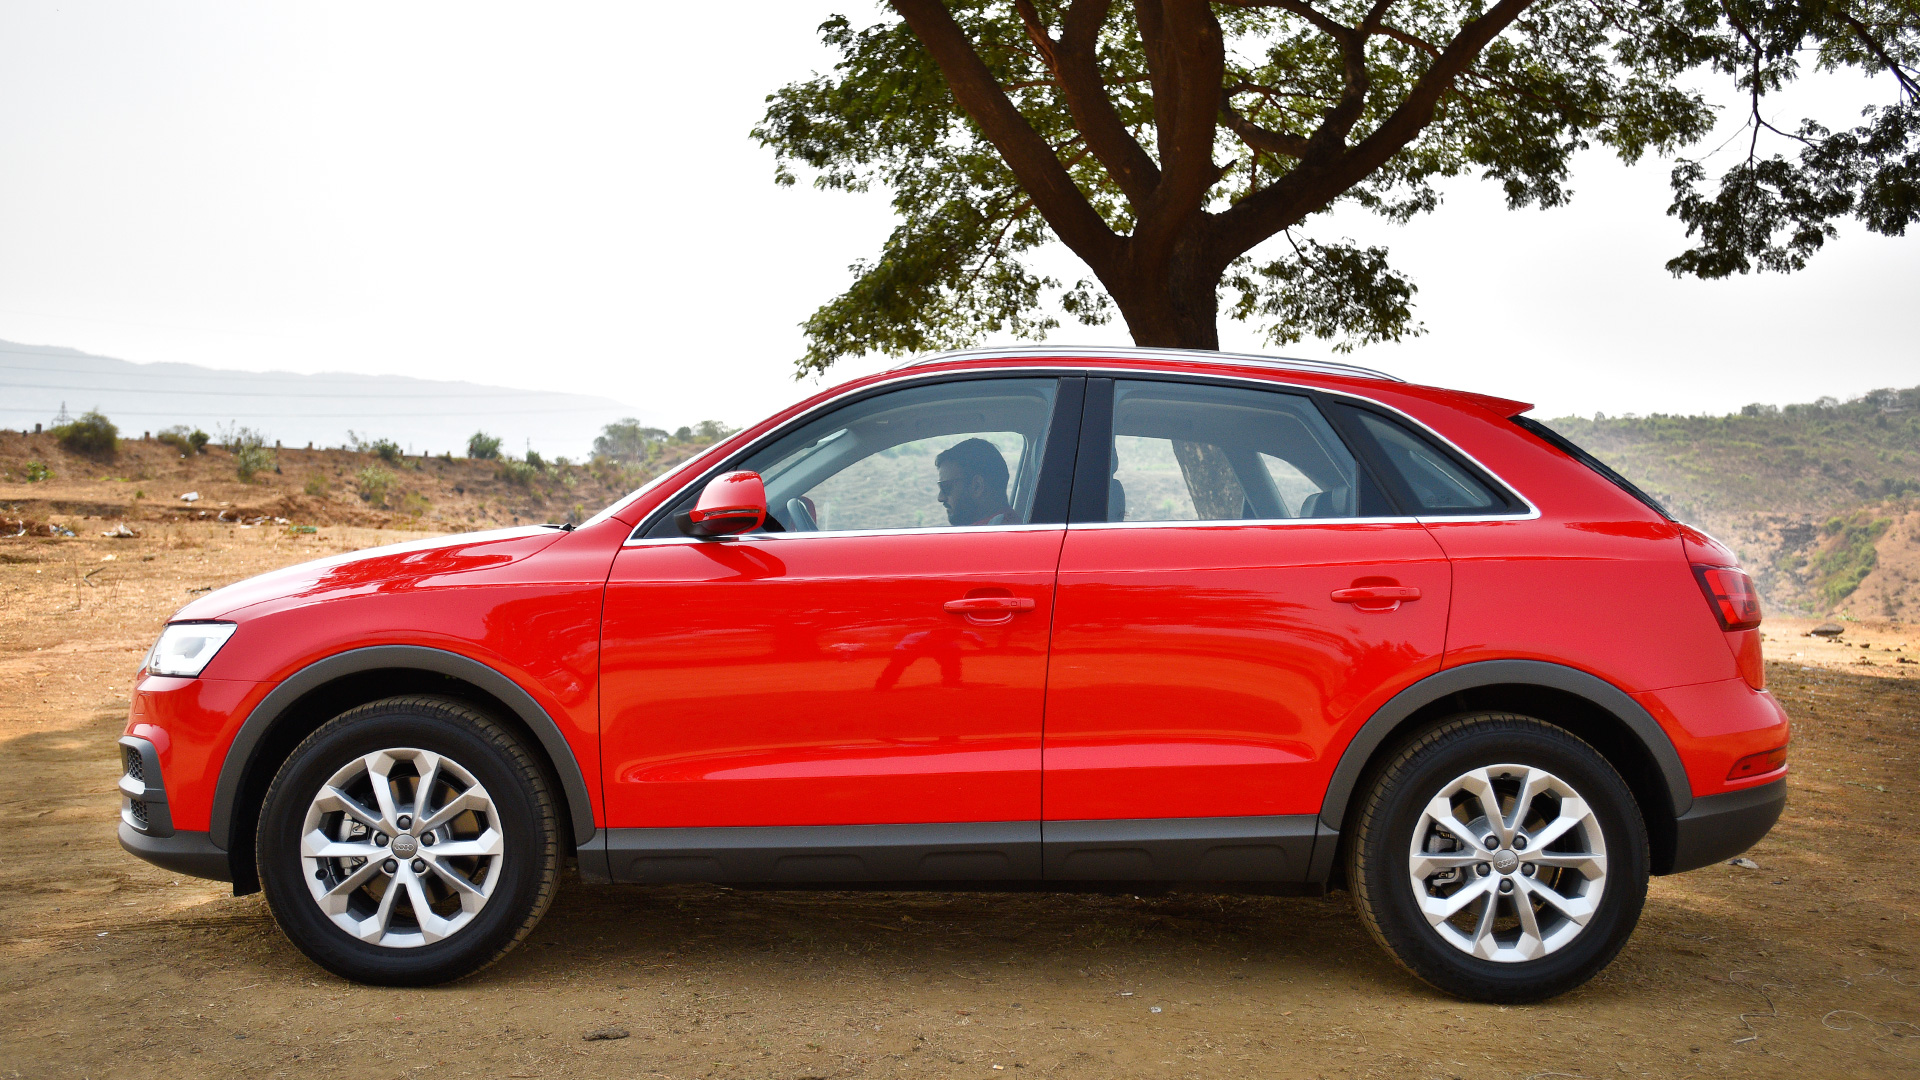 audi q3 2017 30 tdi premium price mileage reviews specification gallery overdrive. Black Bedroom Furniture Sets. Home Design Ideas